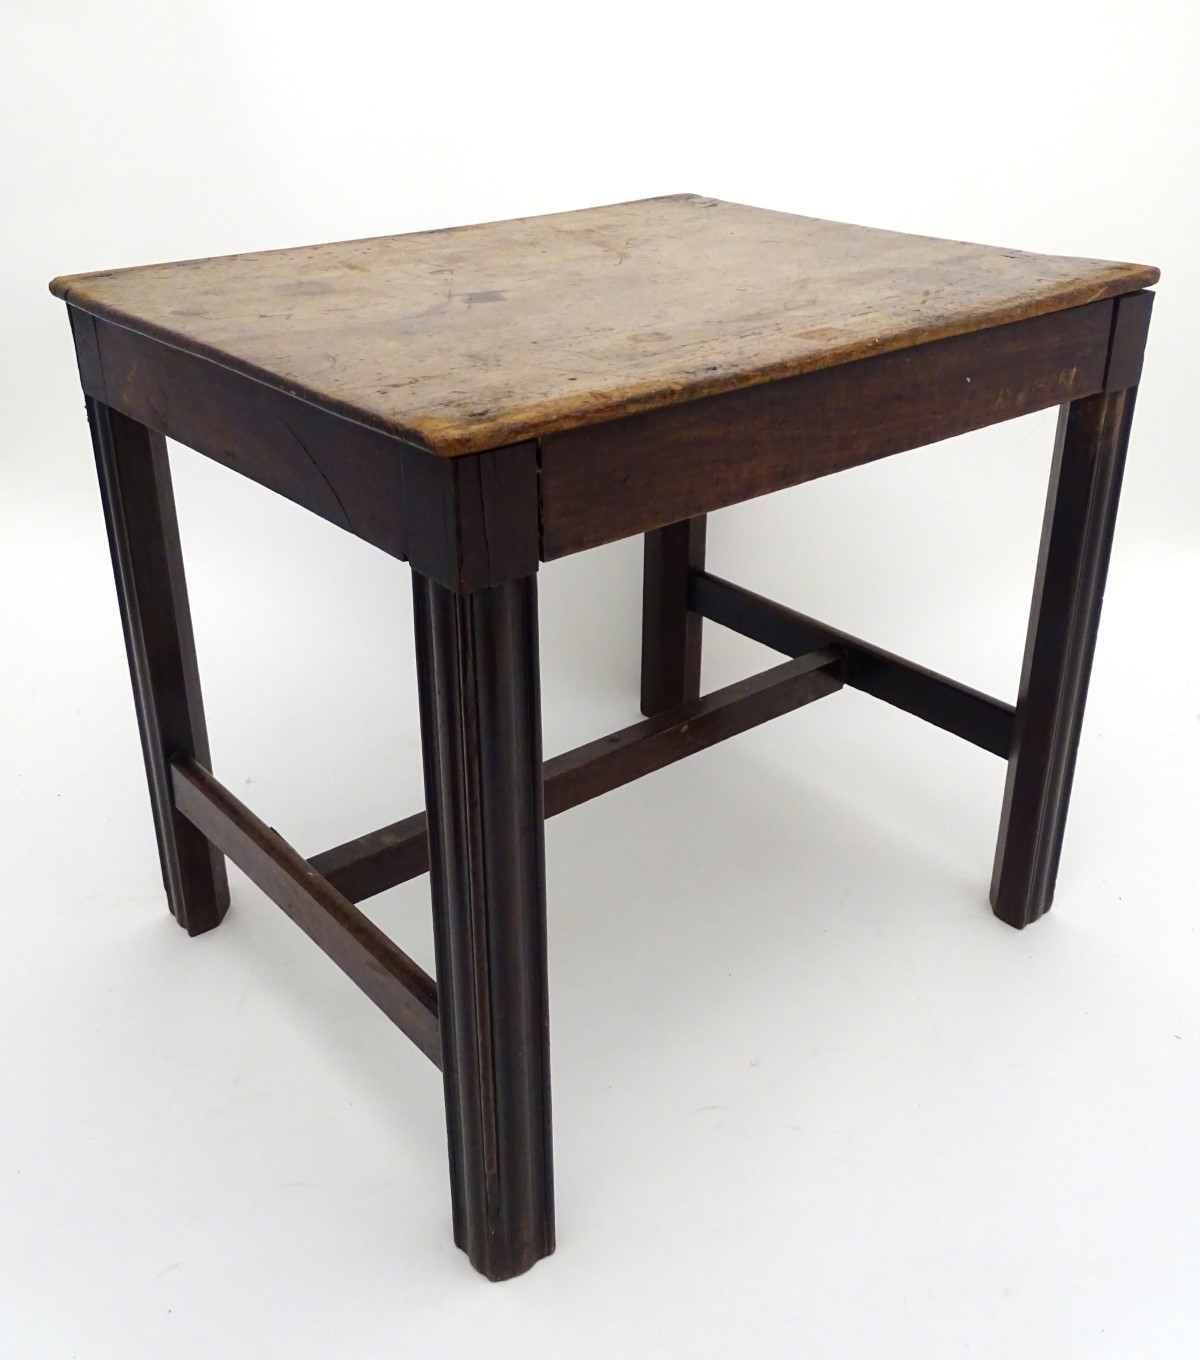 Lot 32 - A late 18thC mahogany low table / stool with moulded legs and a chamfered frame,